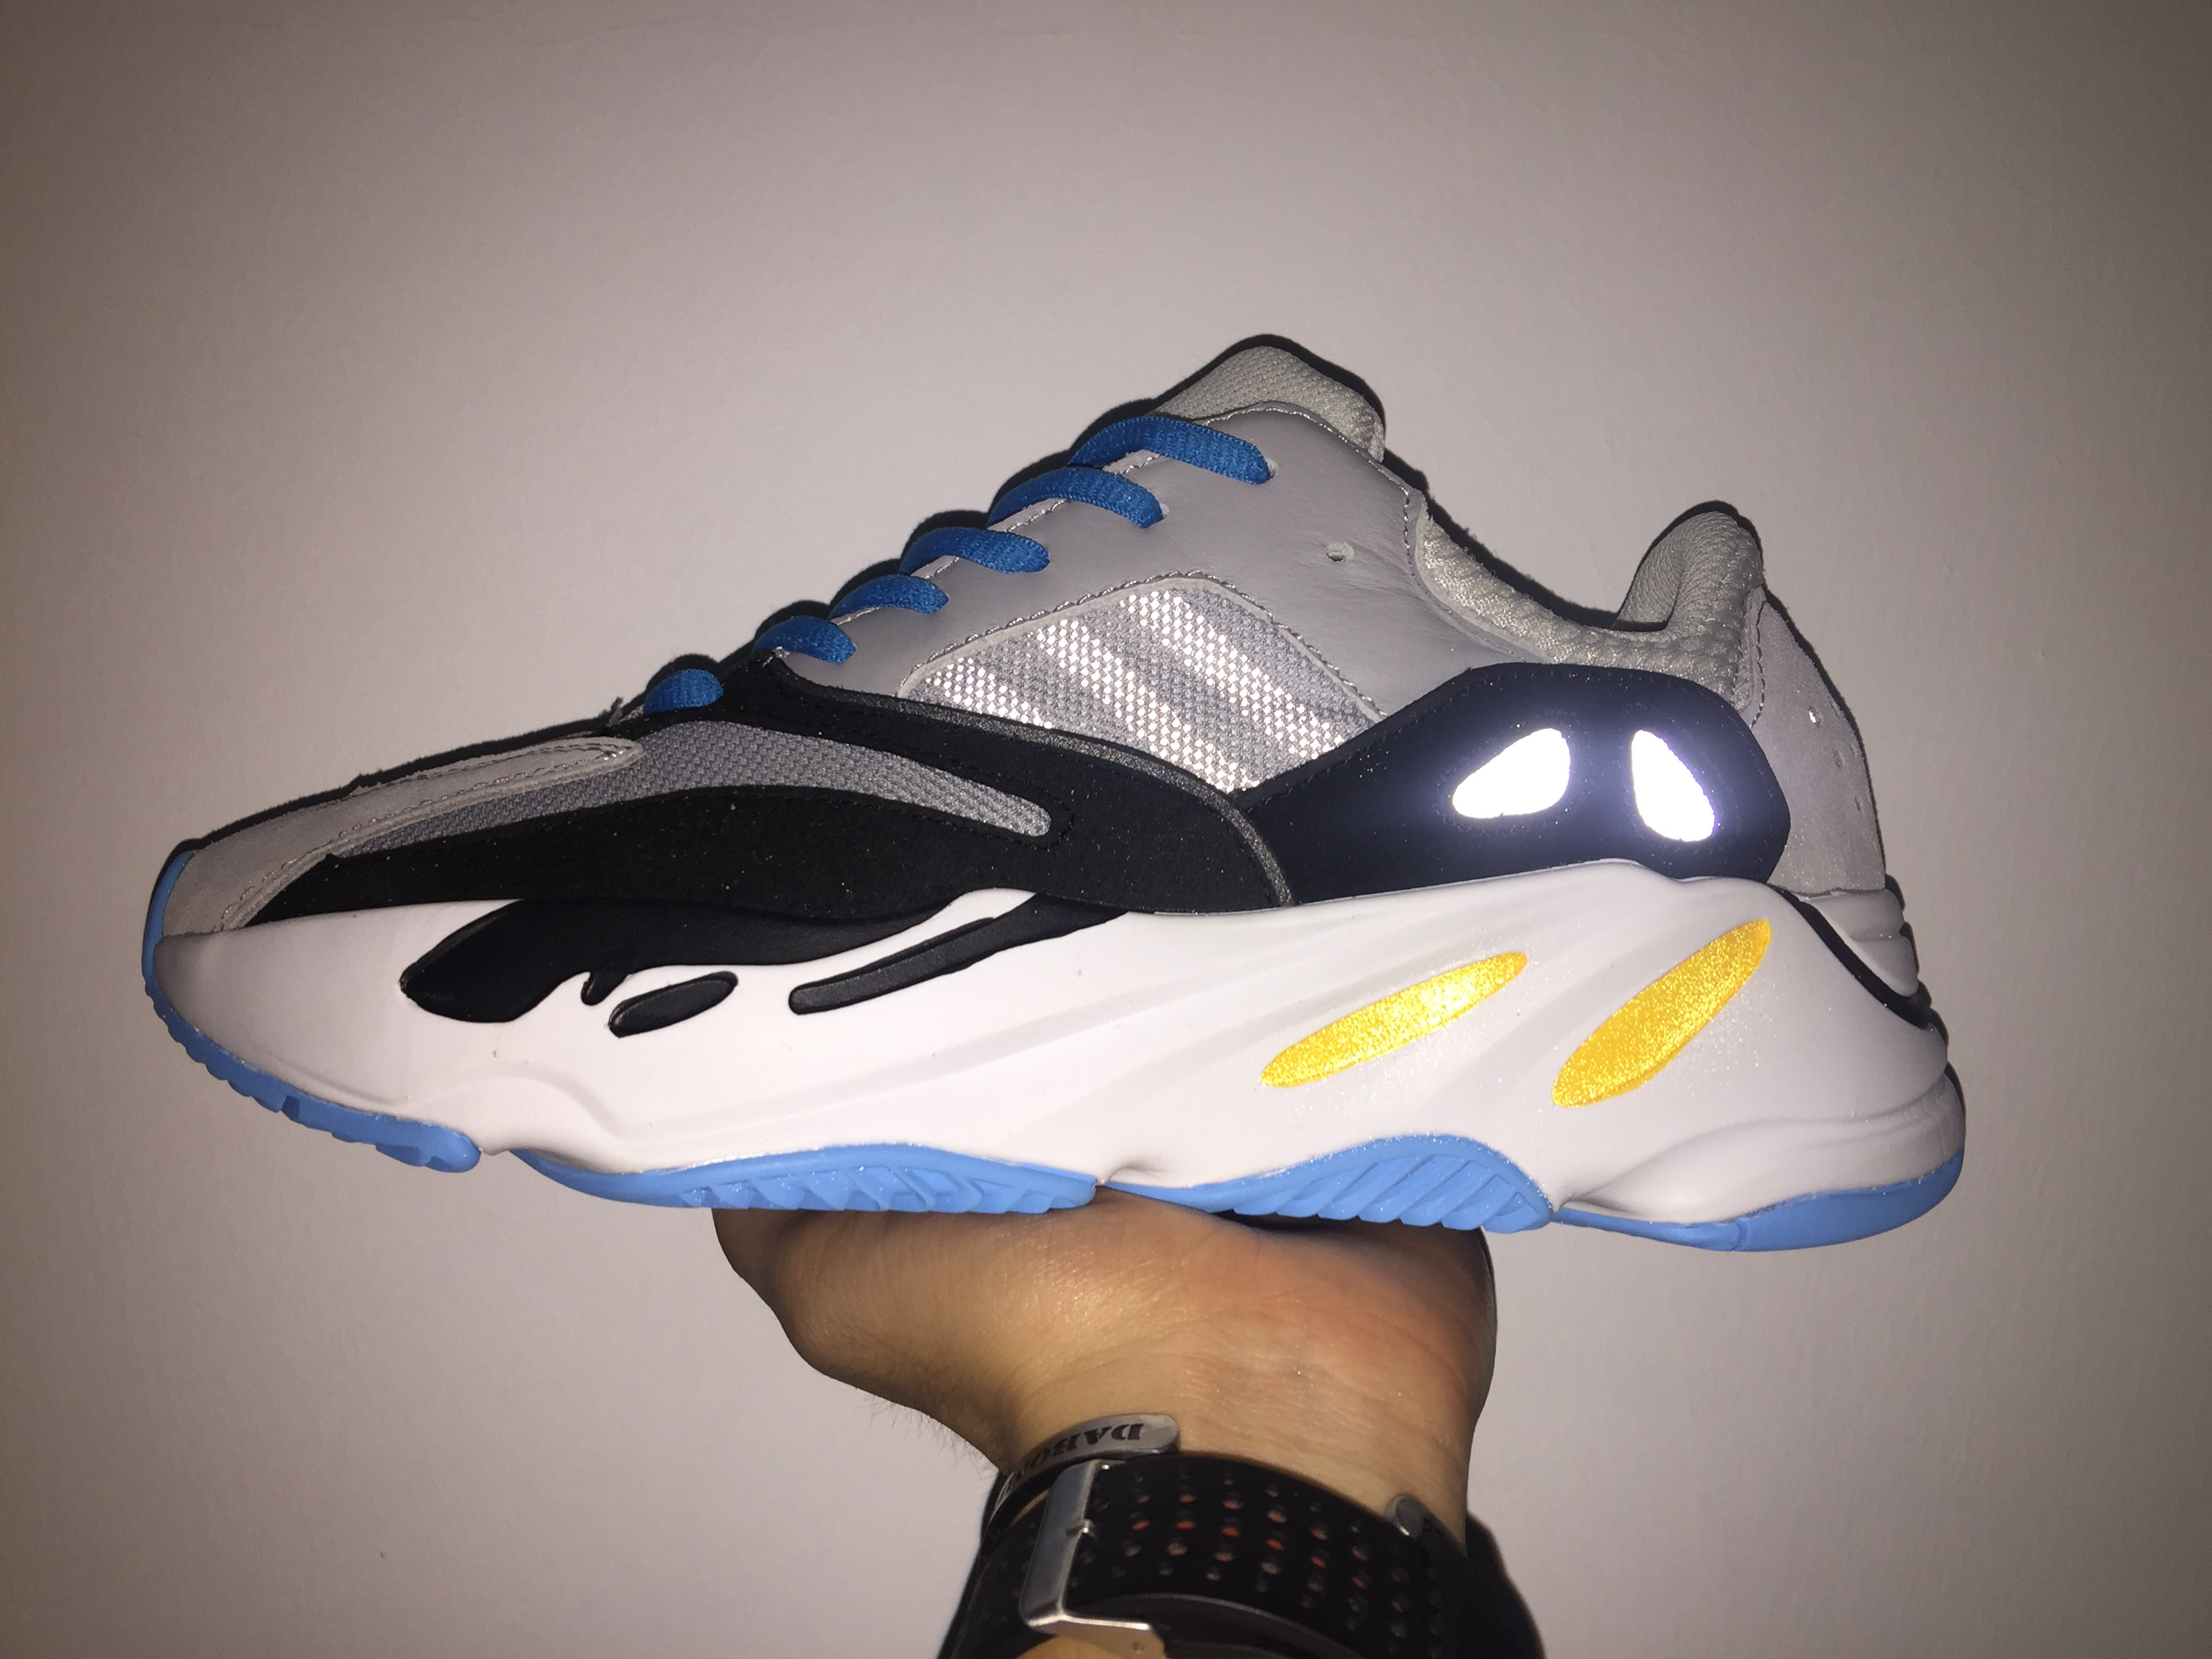 Yeezy Wave Runner 700 Grey Blue - Click Image to Close